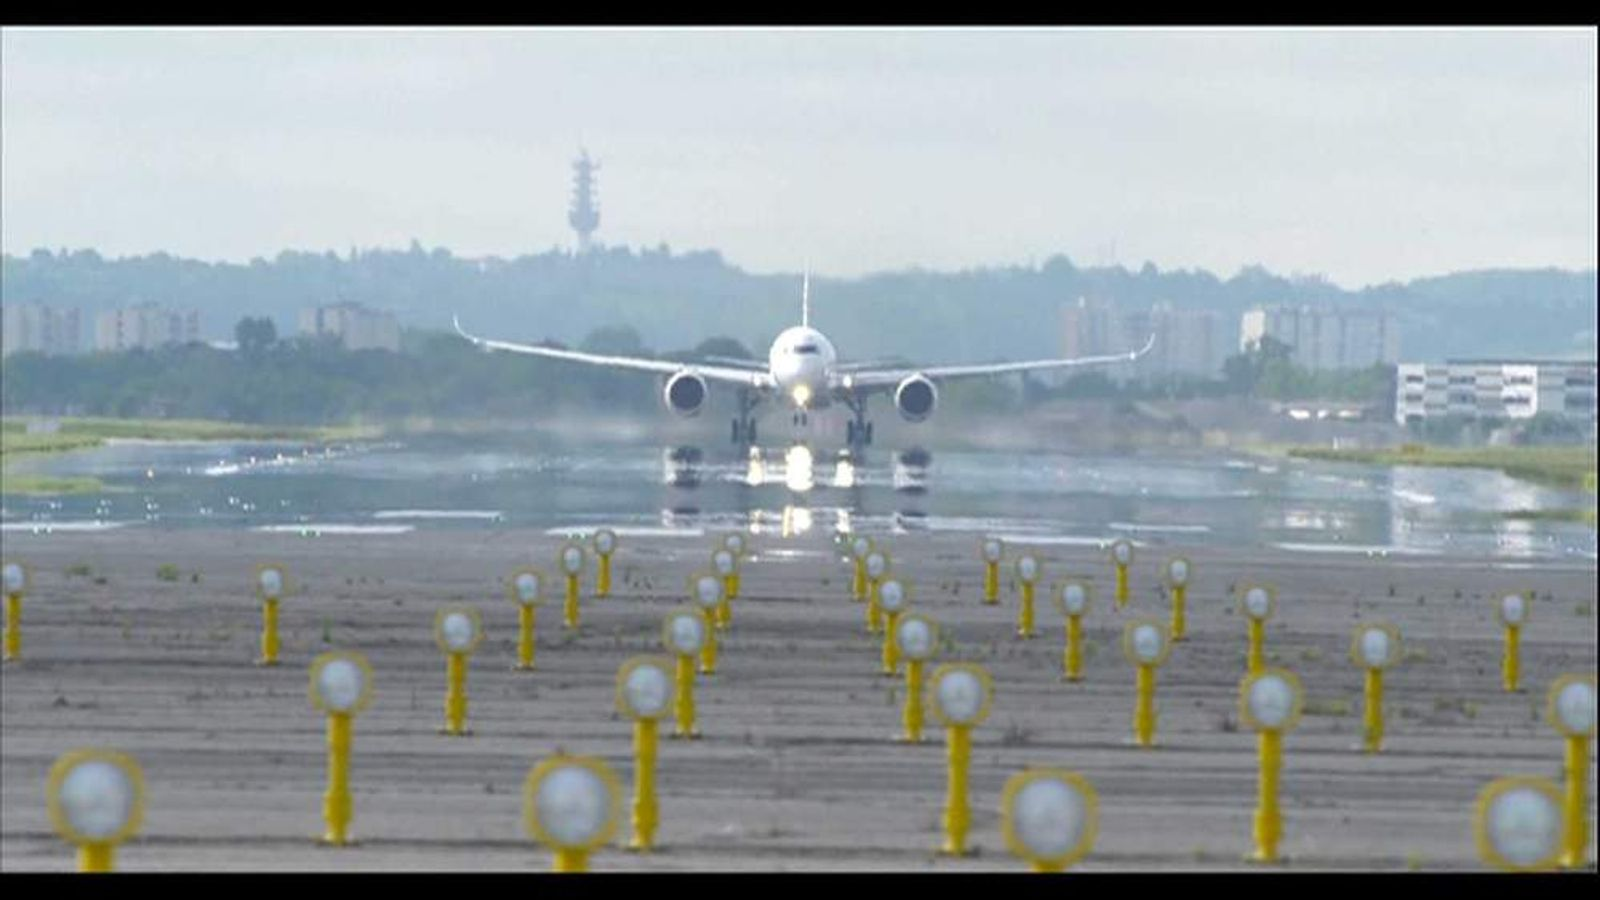 Airbus A350 takeoff on maiden flight